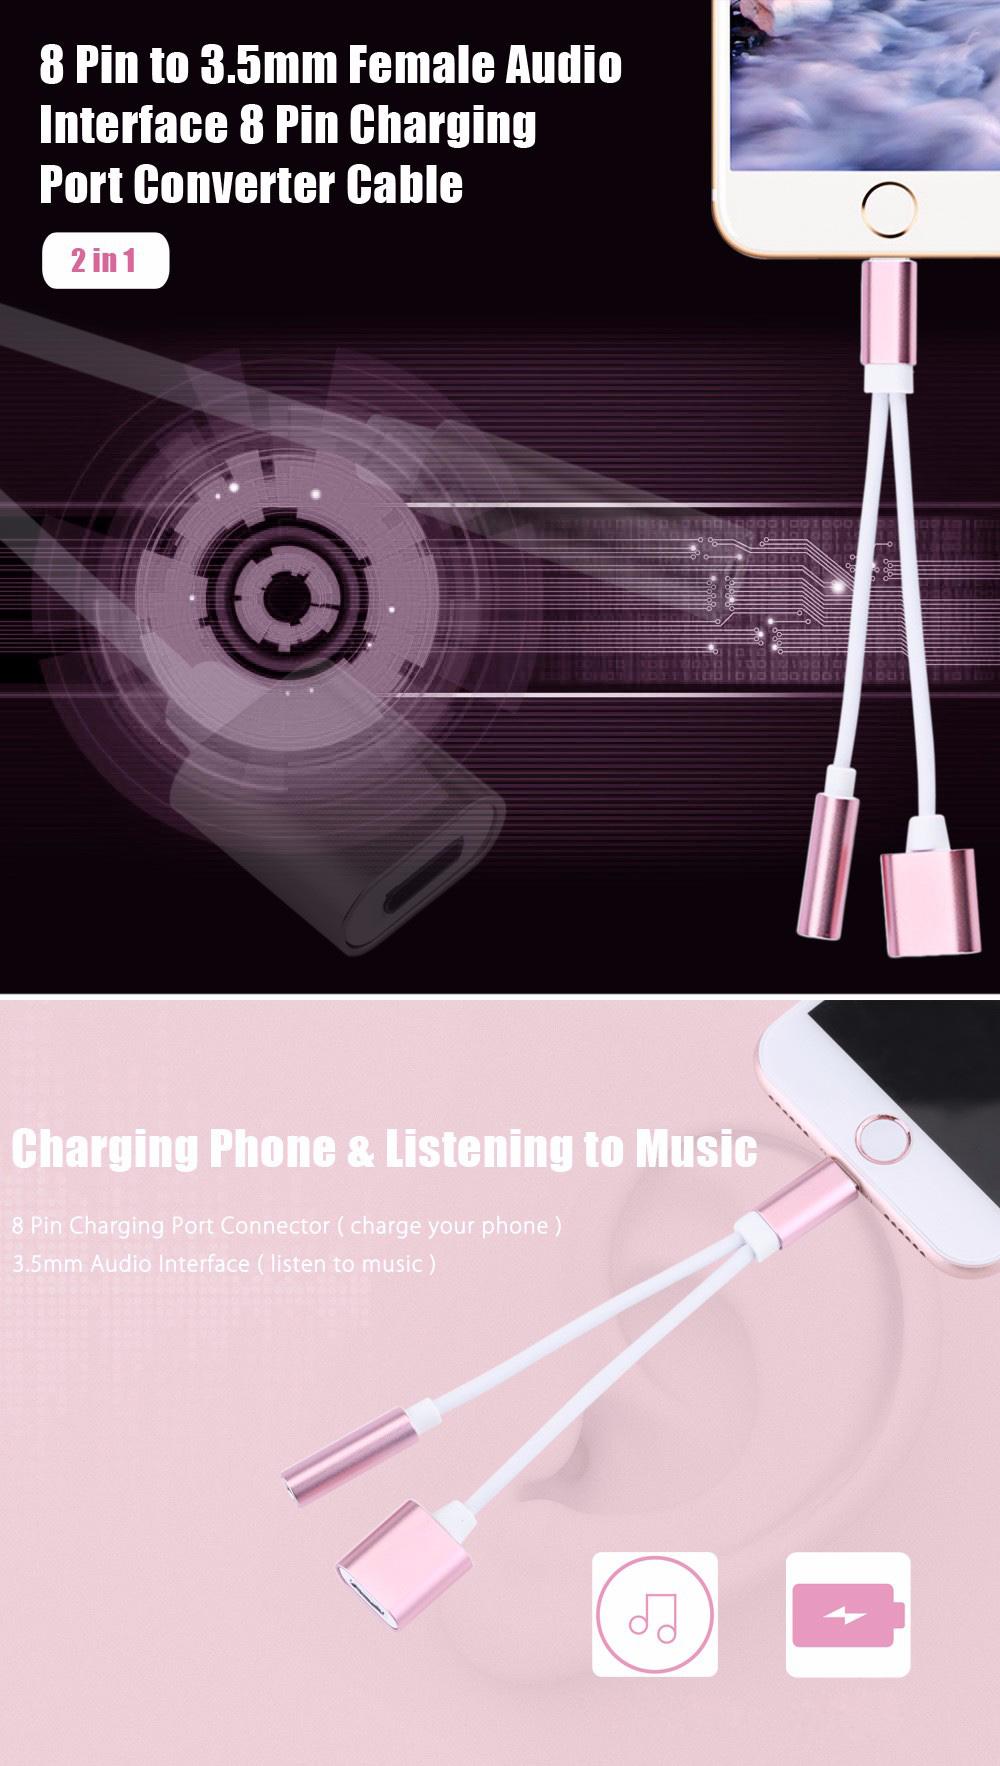 2 in 1 8 Pin to 3.5mm Audio Interface Charging Converter Cable for iPhone 13cm